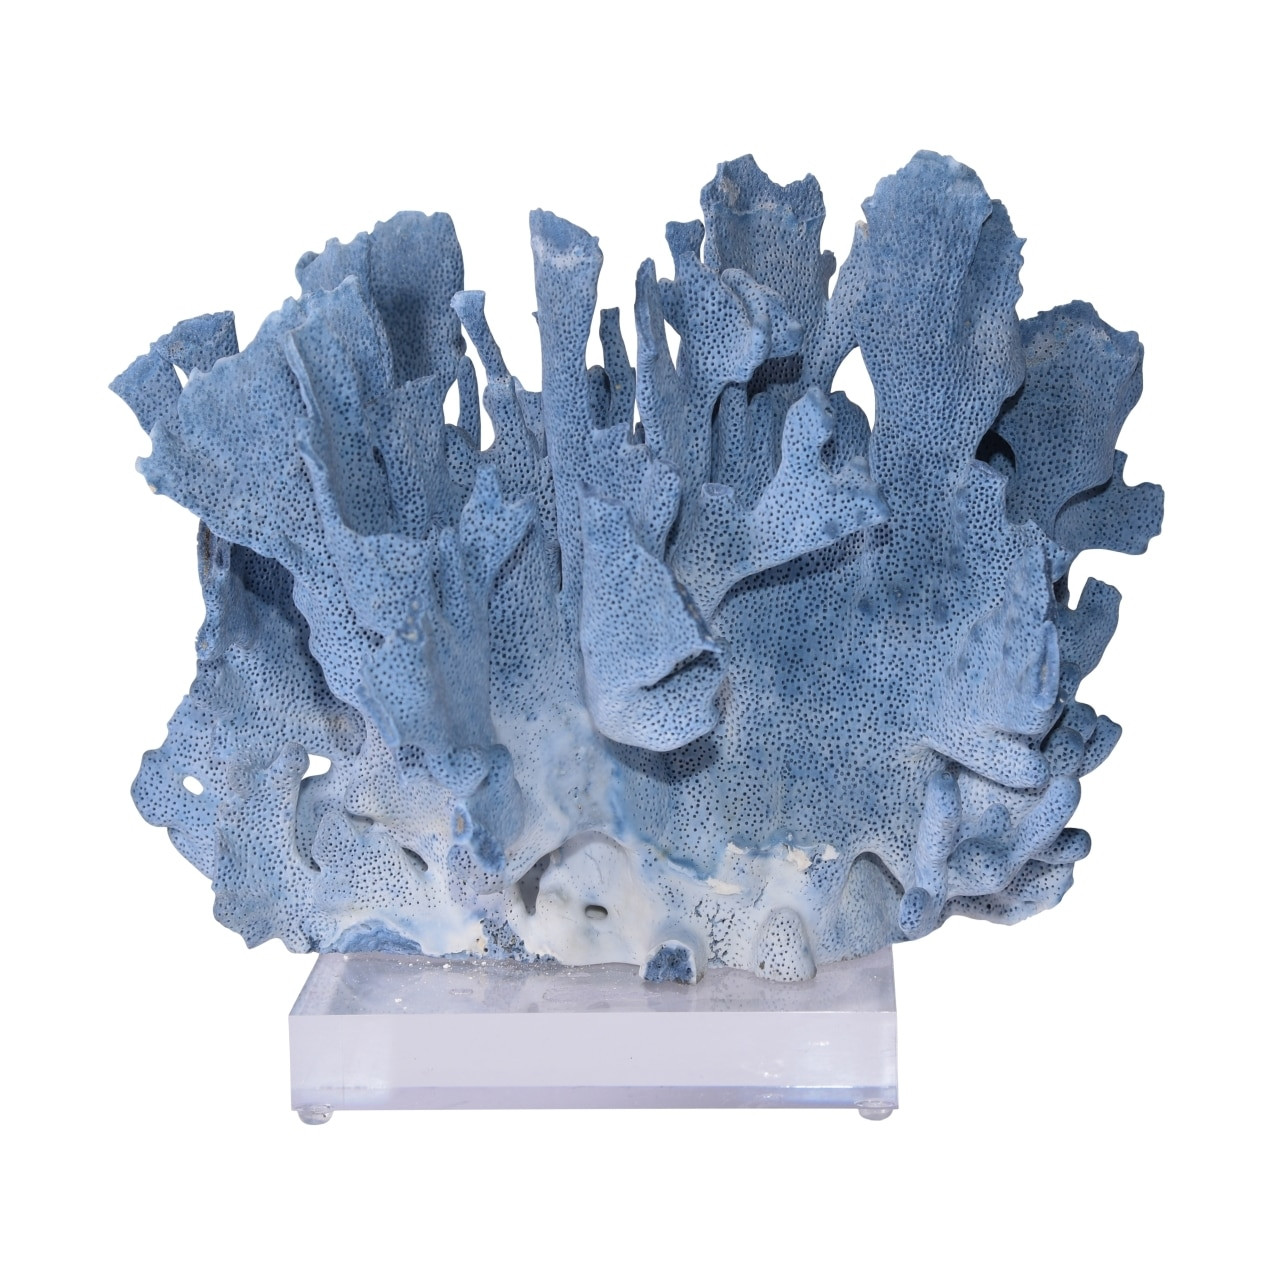 Blue Coral On Acrylic Base - 3 Sizes